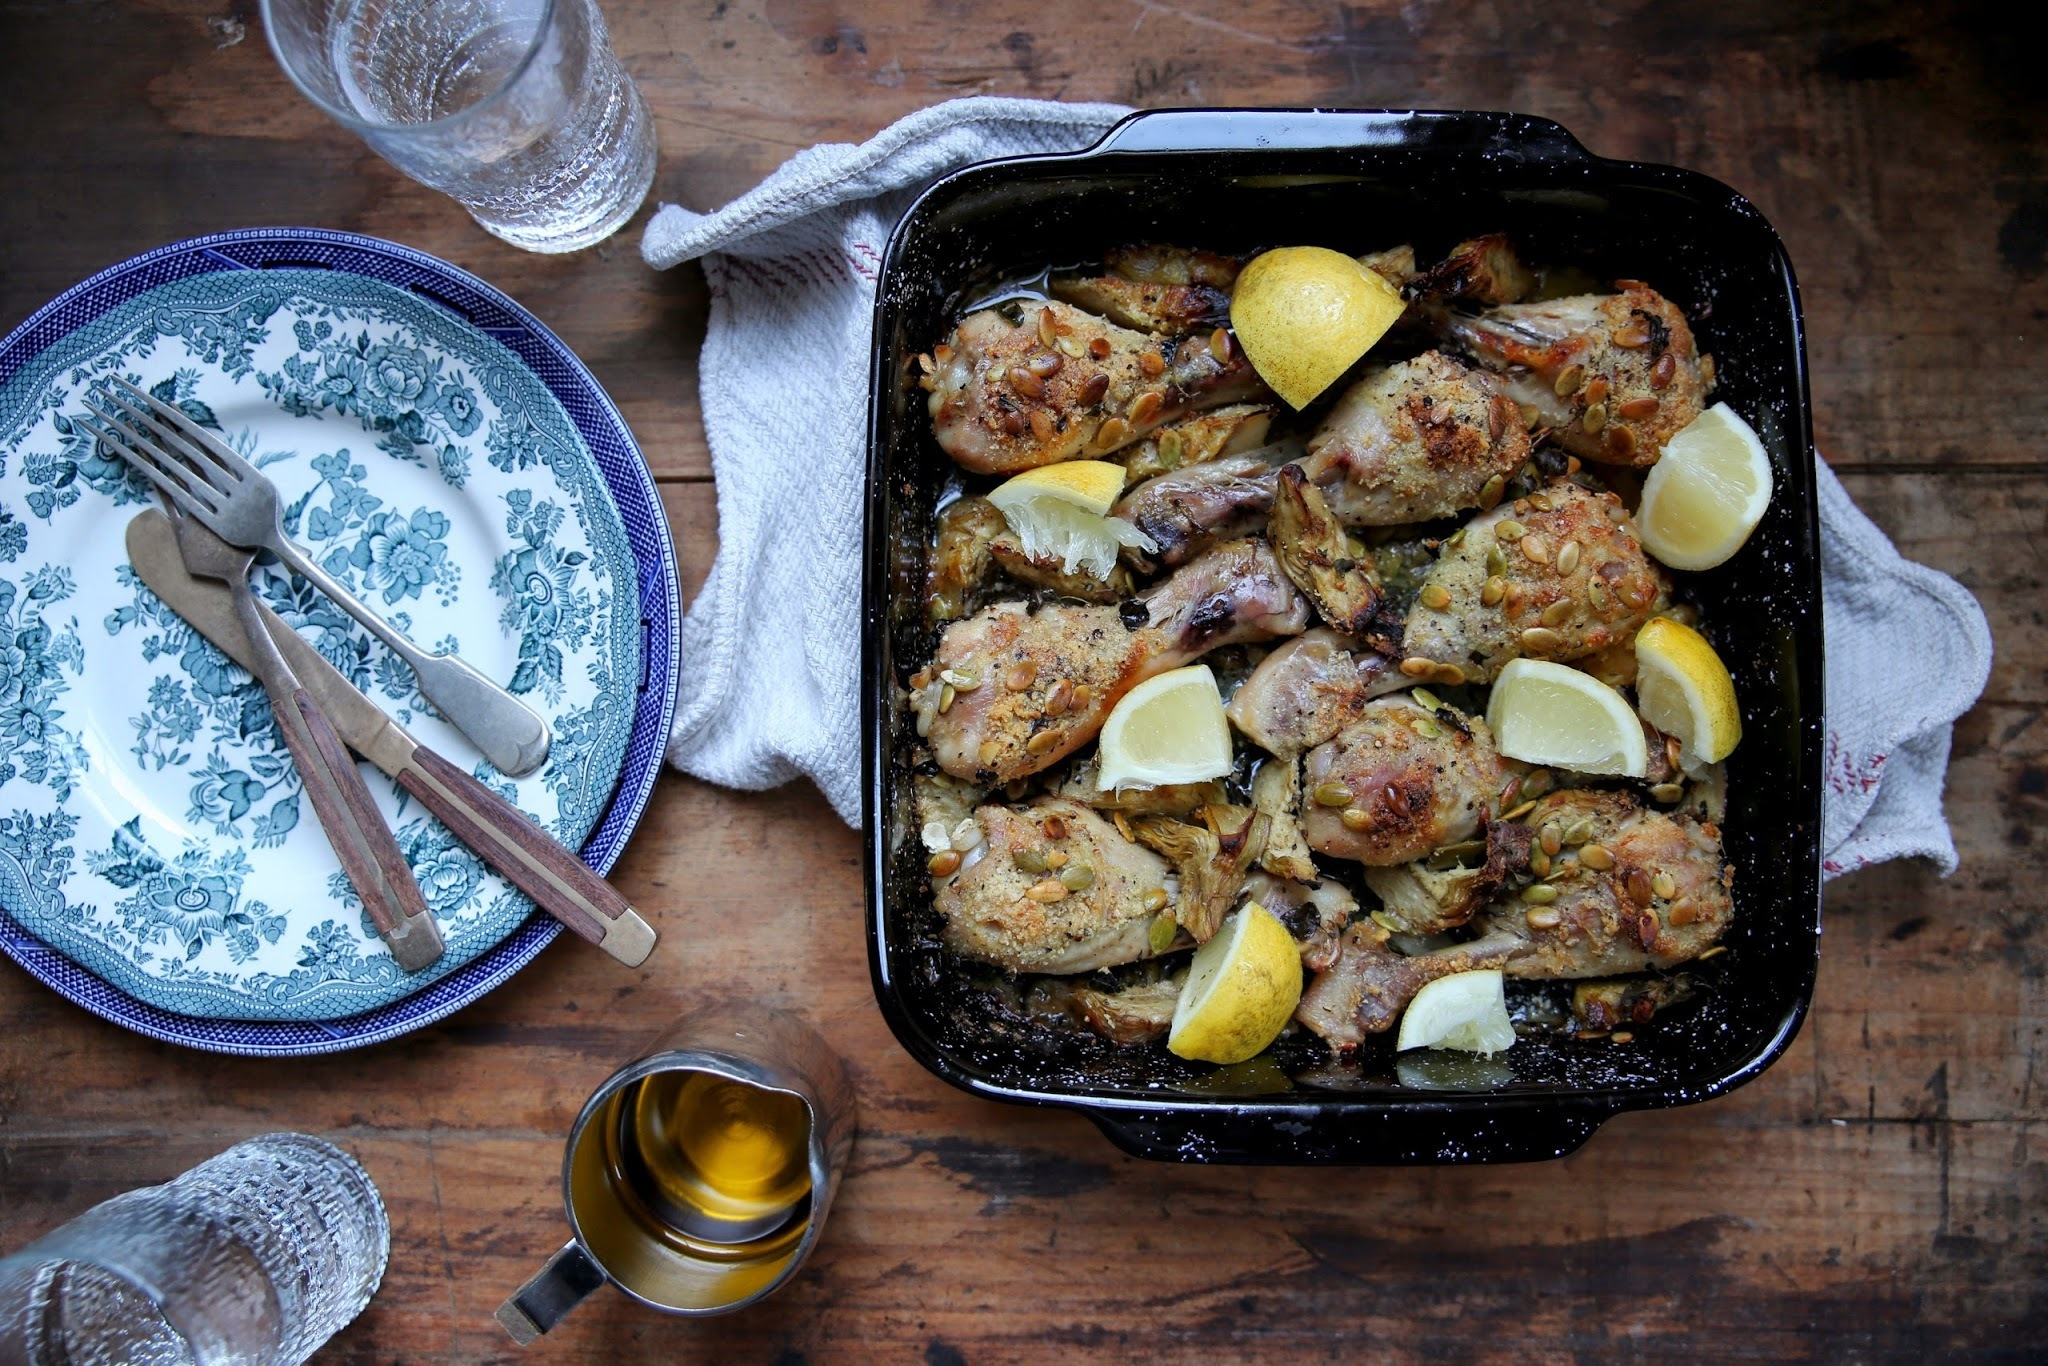 CRISPY ALMOND COATED CHICKEN ROASTED WITH ARTICHOKES & LEMON